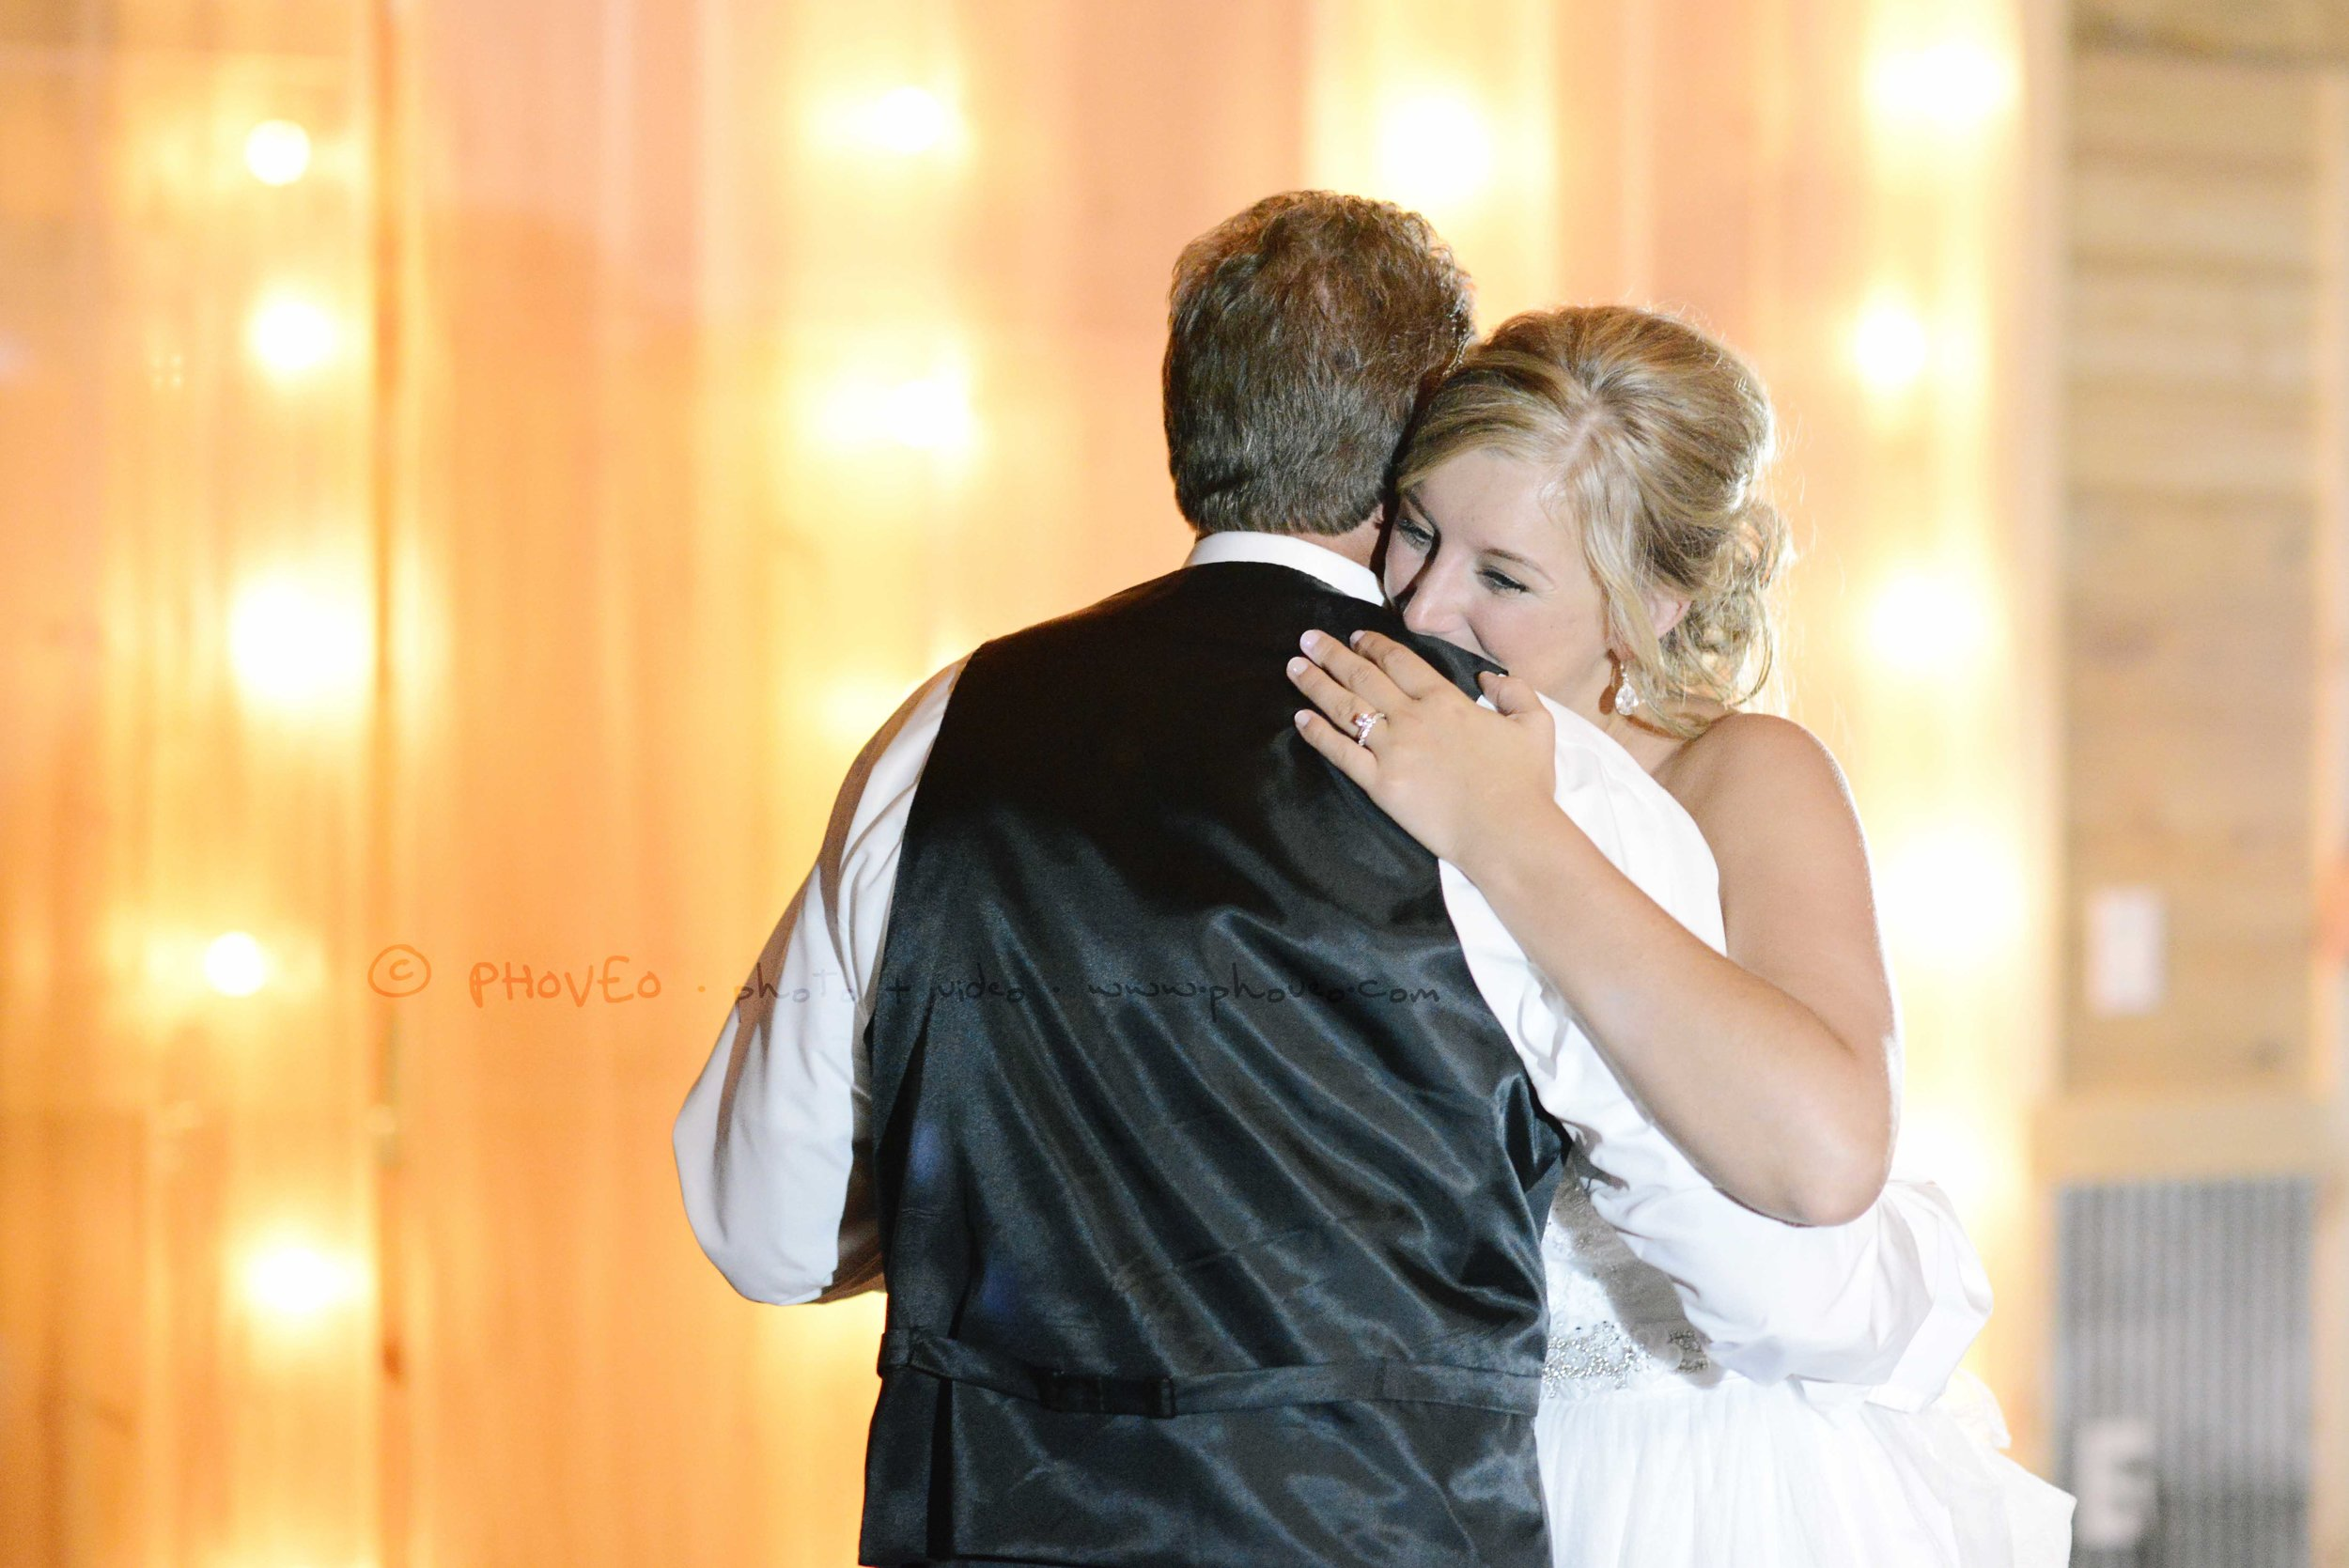 WM_20160826_Katelyn+Tony_100.jpg